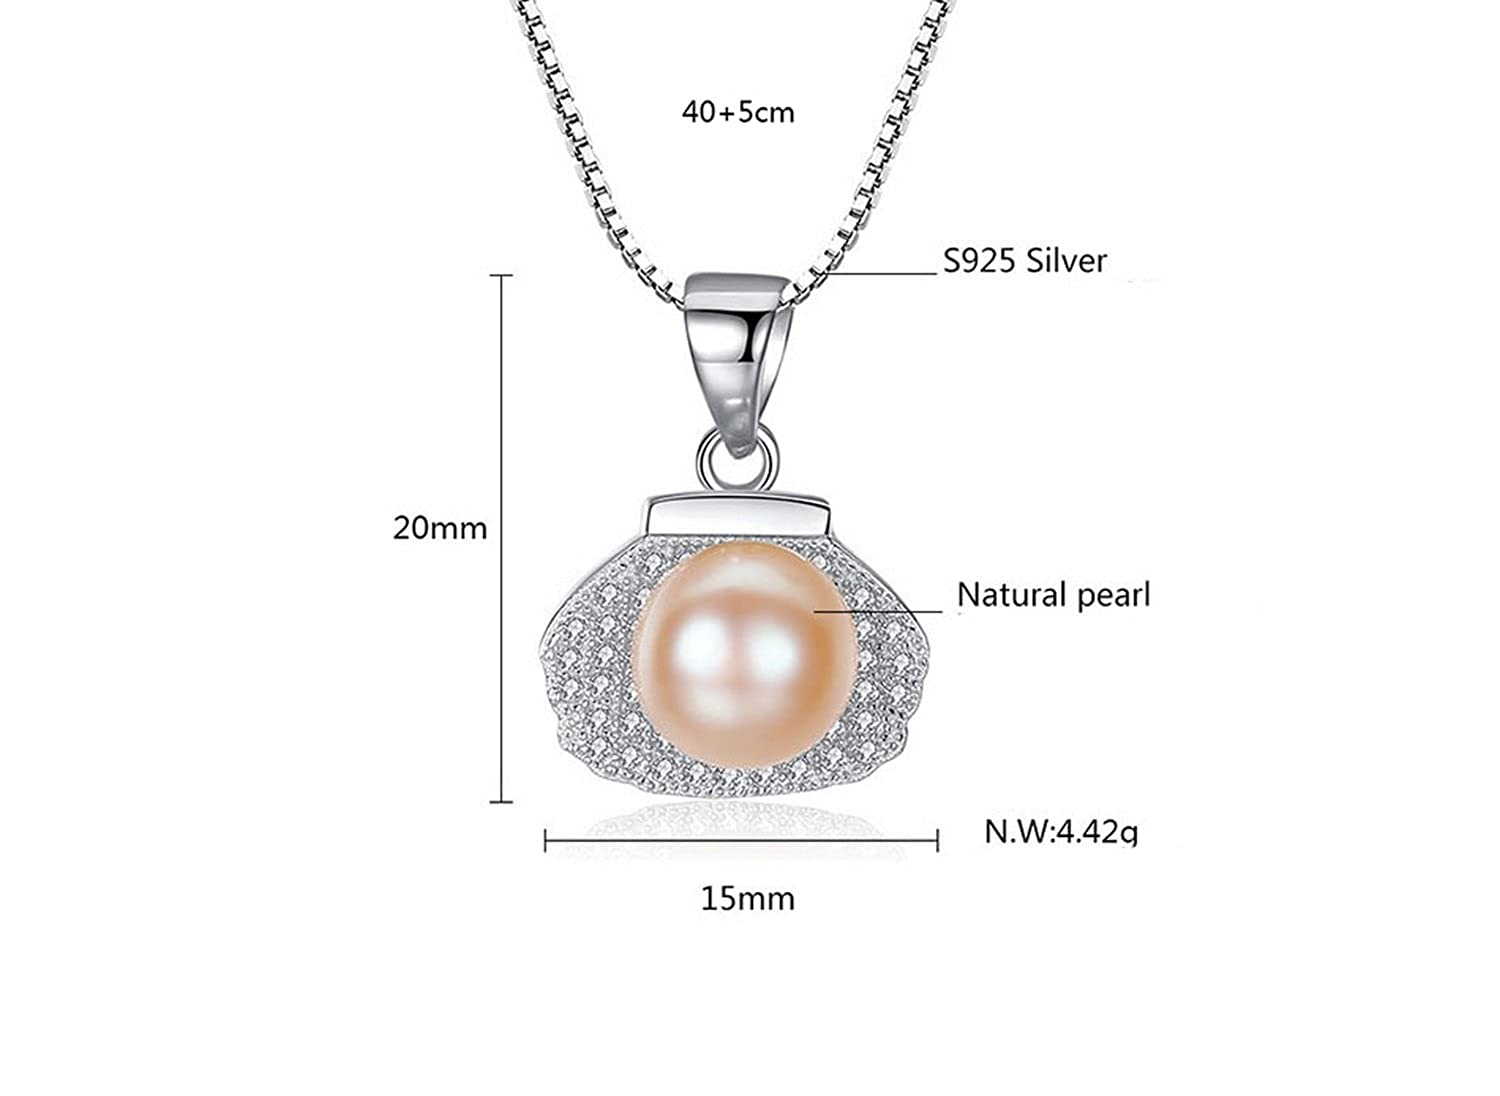 CS-DB Jewelry Silver Lucky Lock Luxury Pearl Chain Charm Pendants Necklaces